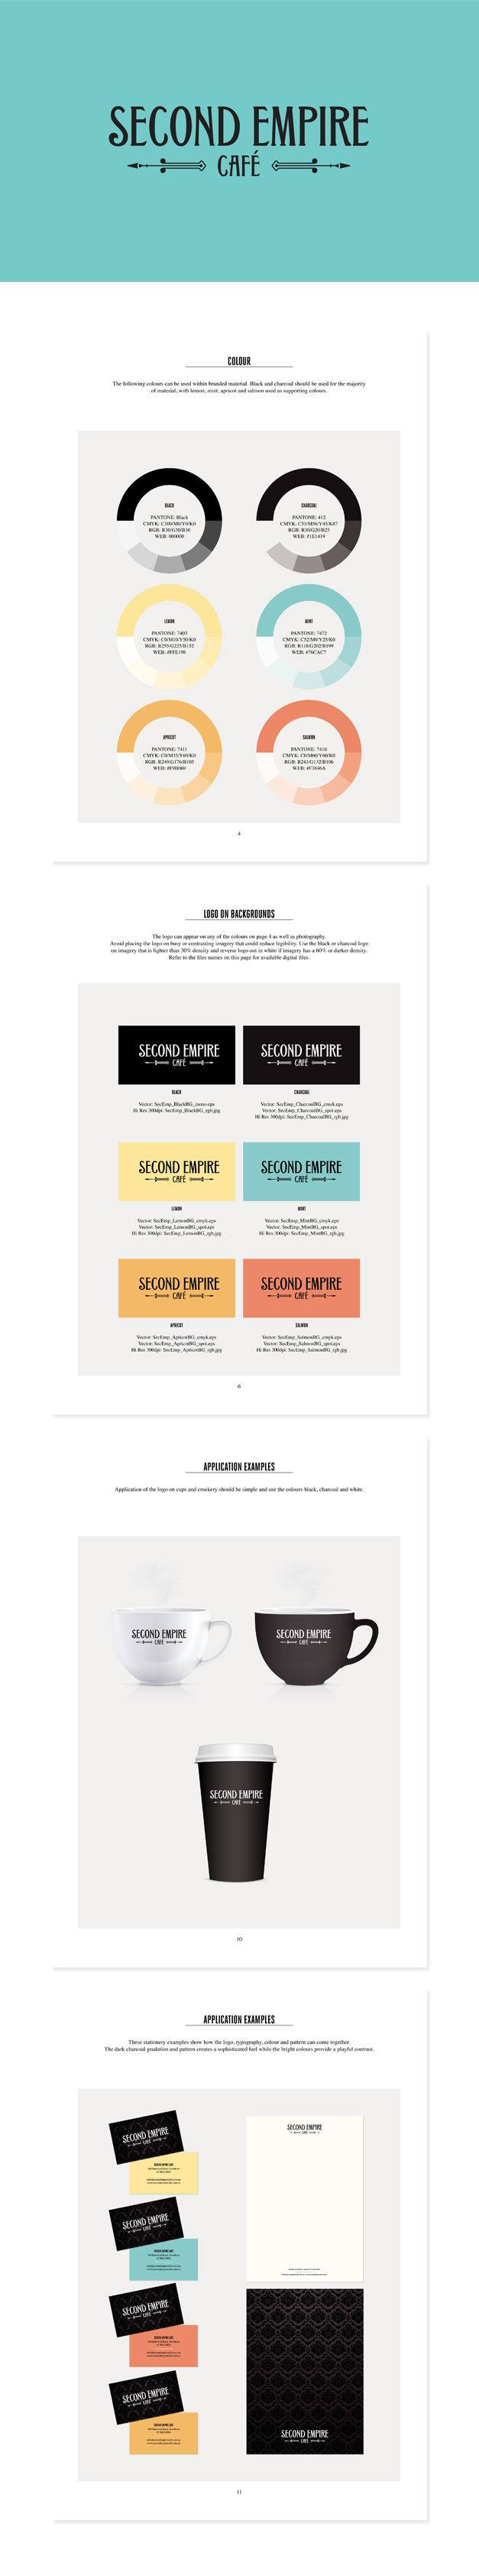 Branding for Second Empire Cafe situated within the new Hawthorn Arts Centre. www.fenton.com.au #communication #PR #branding #graphicdesign